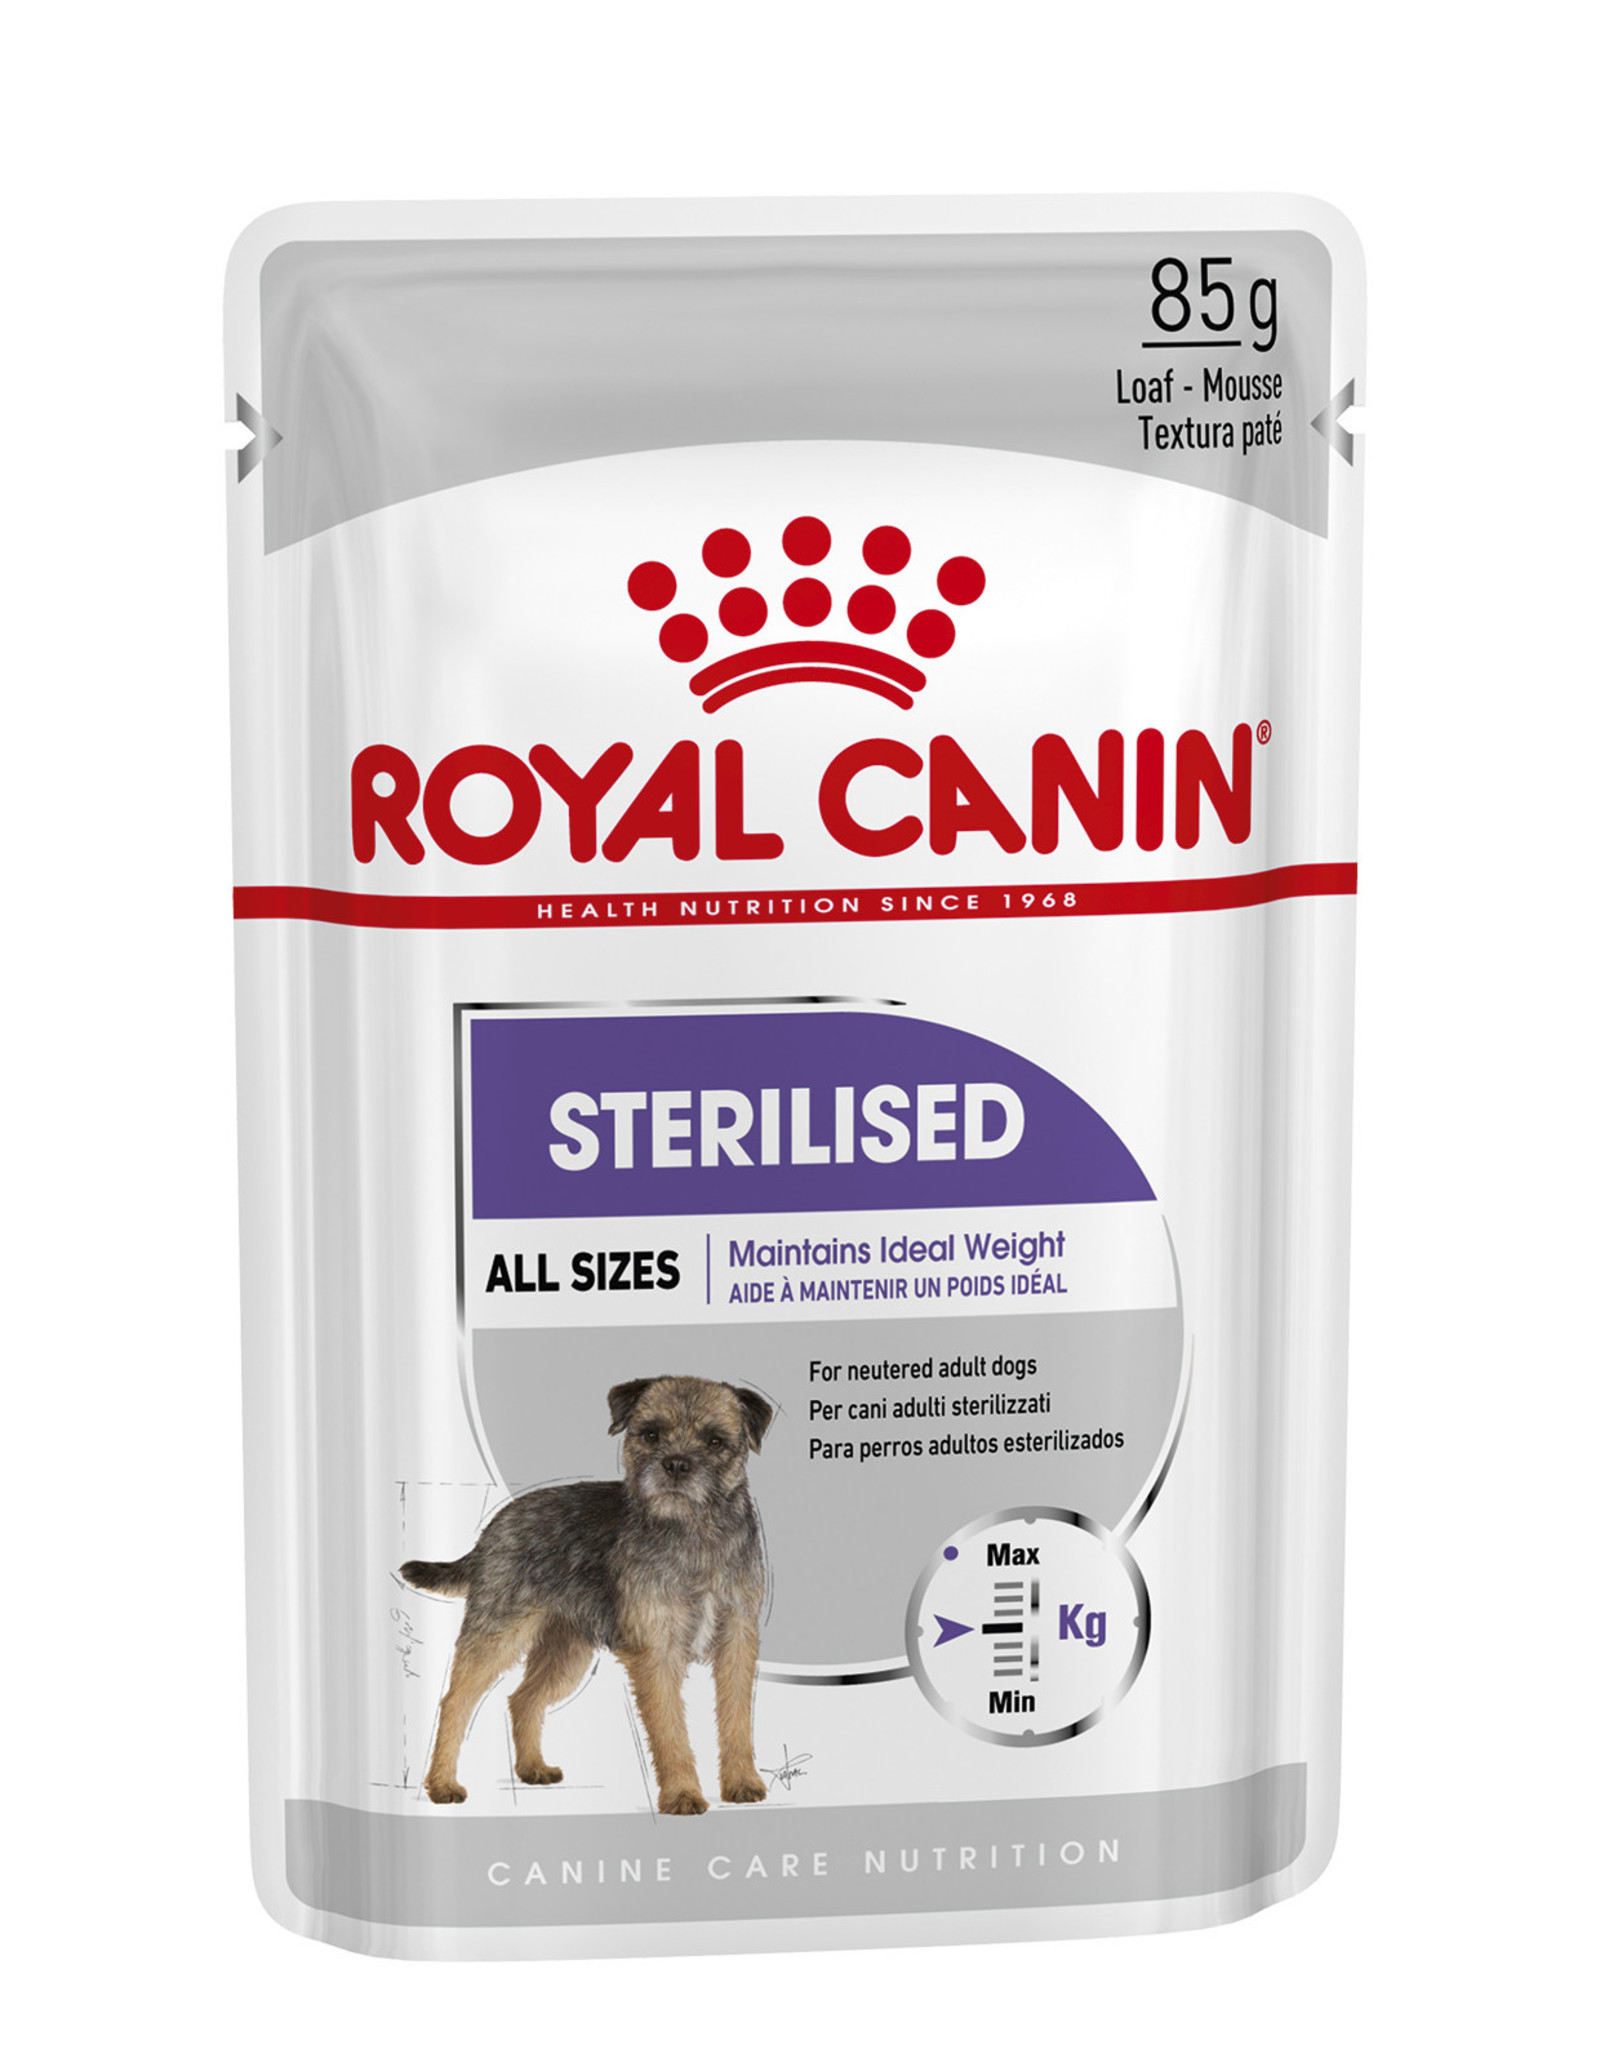 Royal Canin Sterilised Loaf Wet Pouch Dog Food, Box of 12